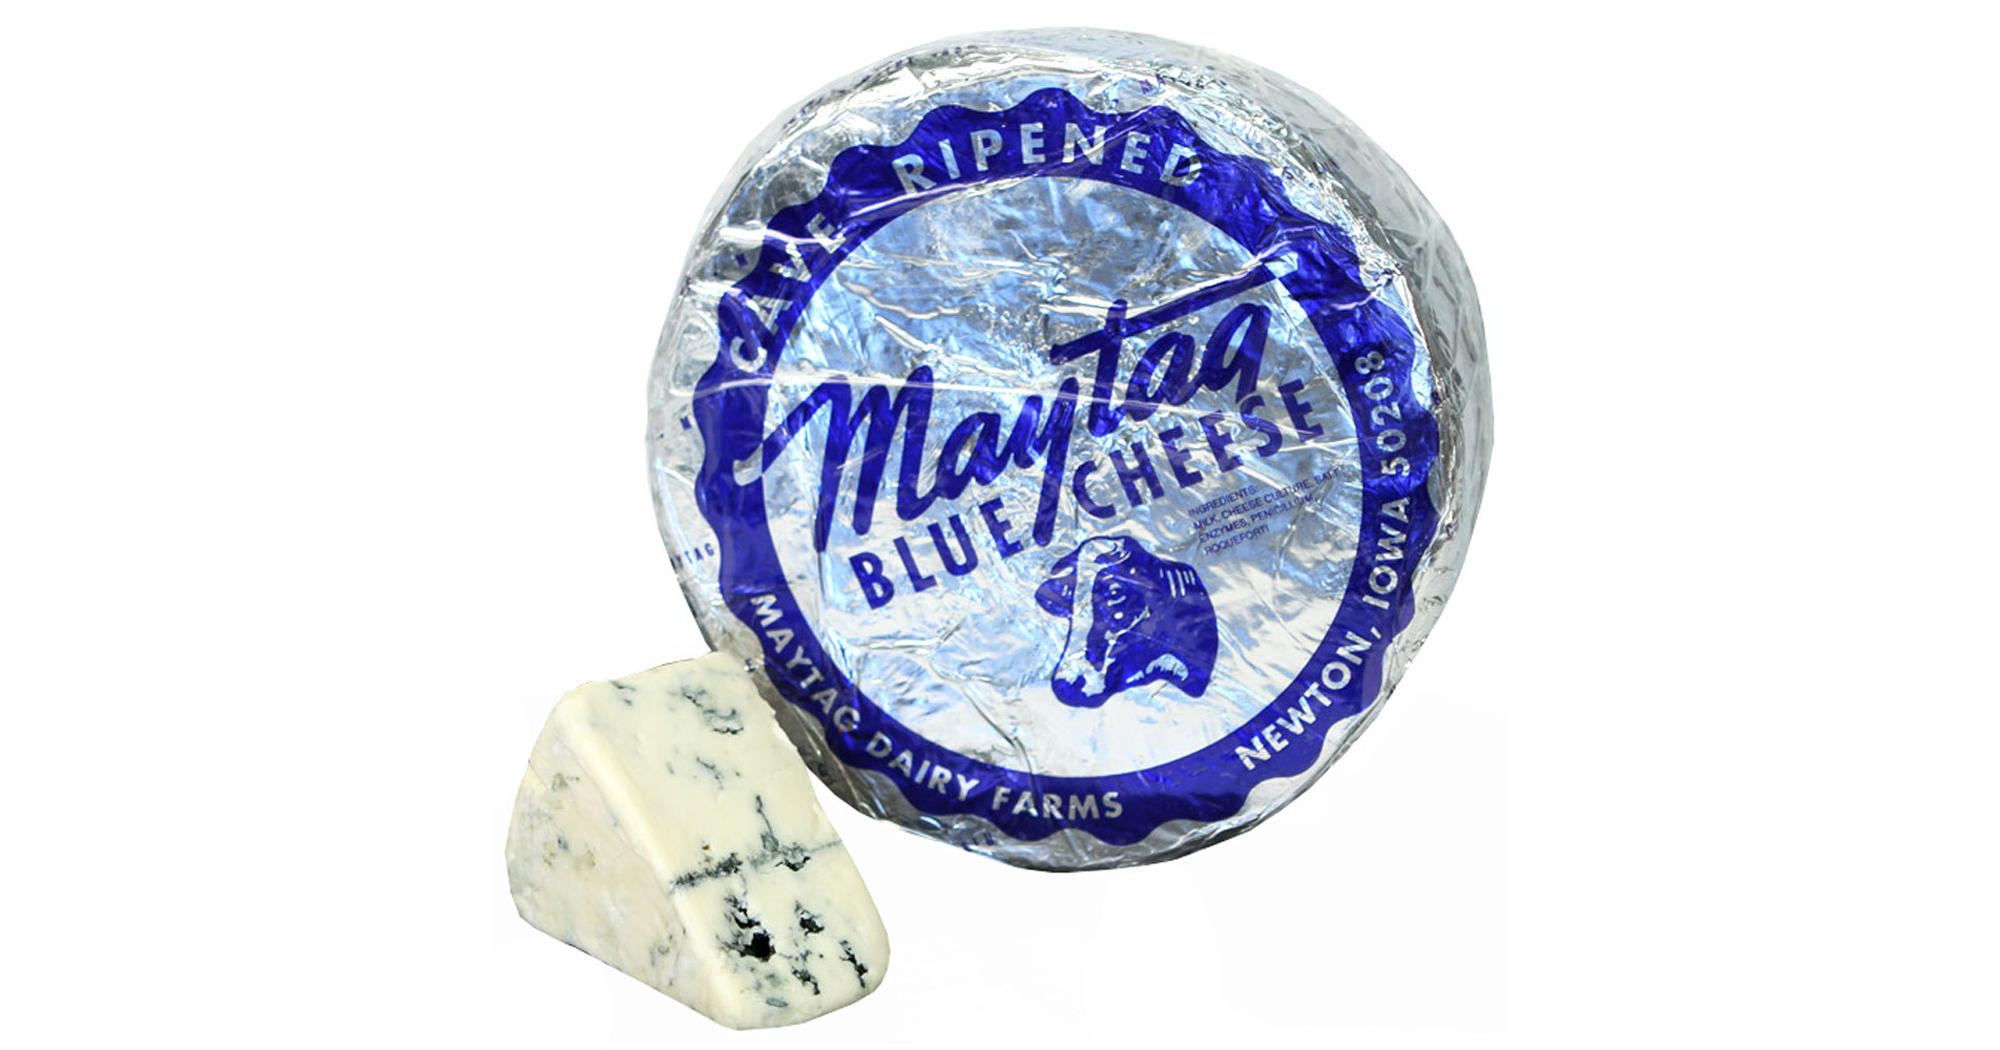 whole foods market maytag blue cheese recall